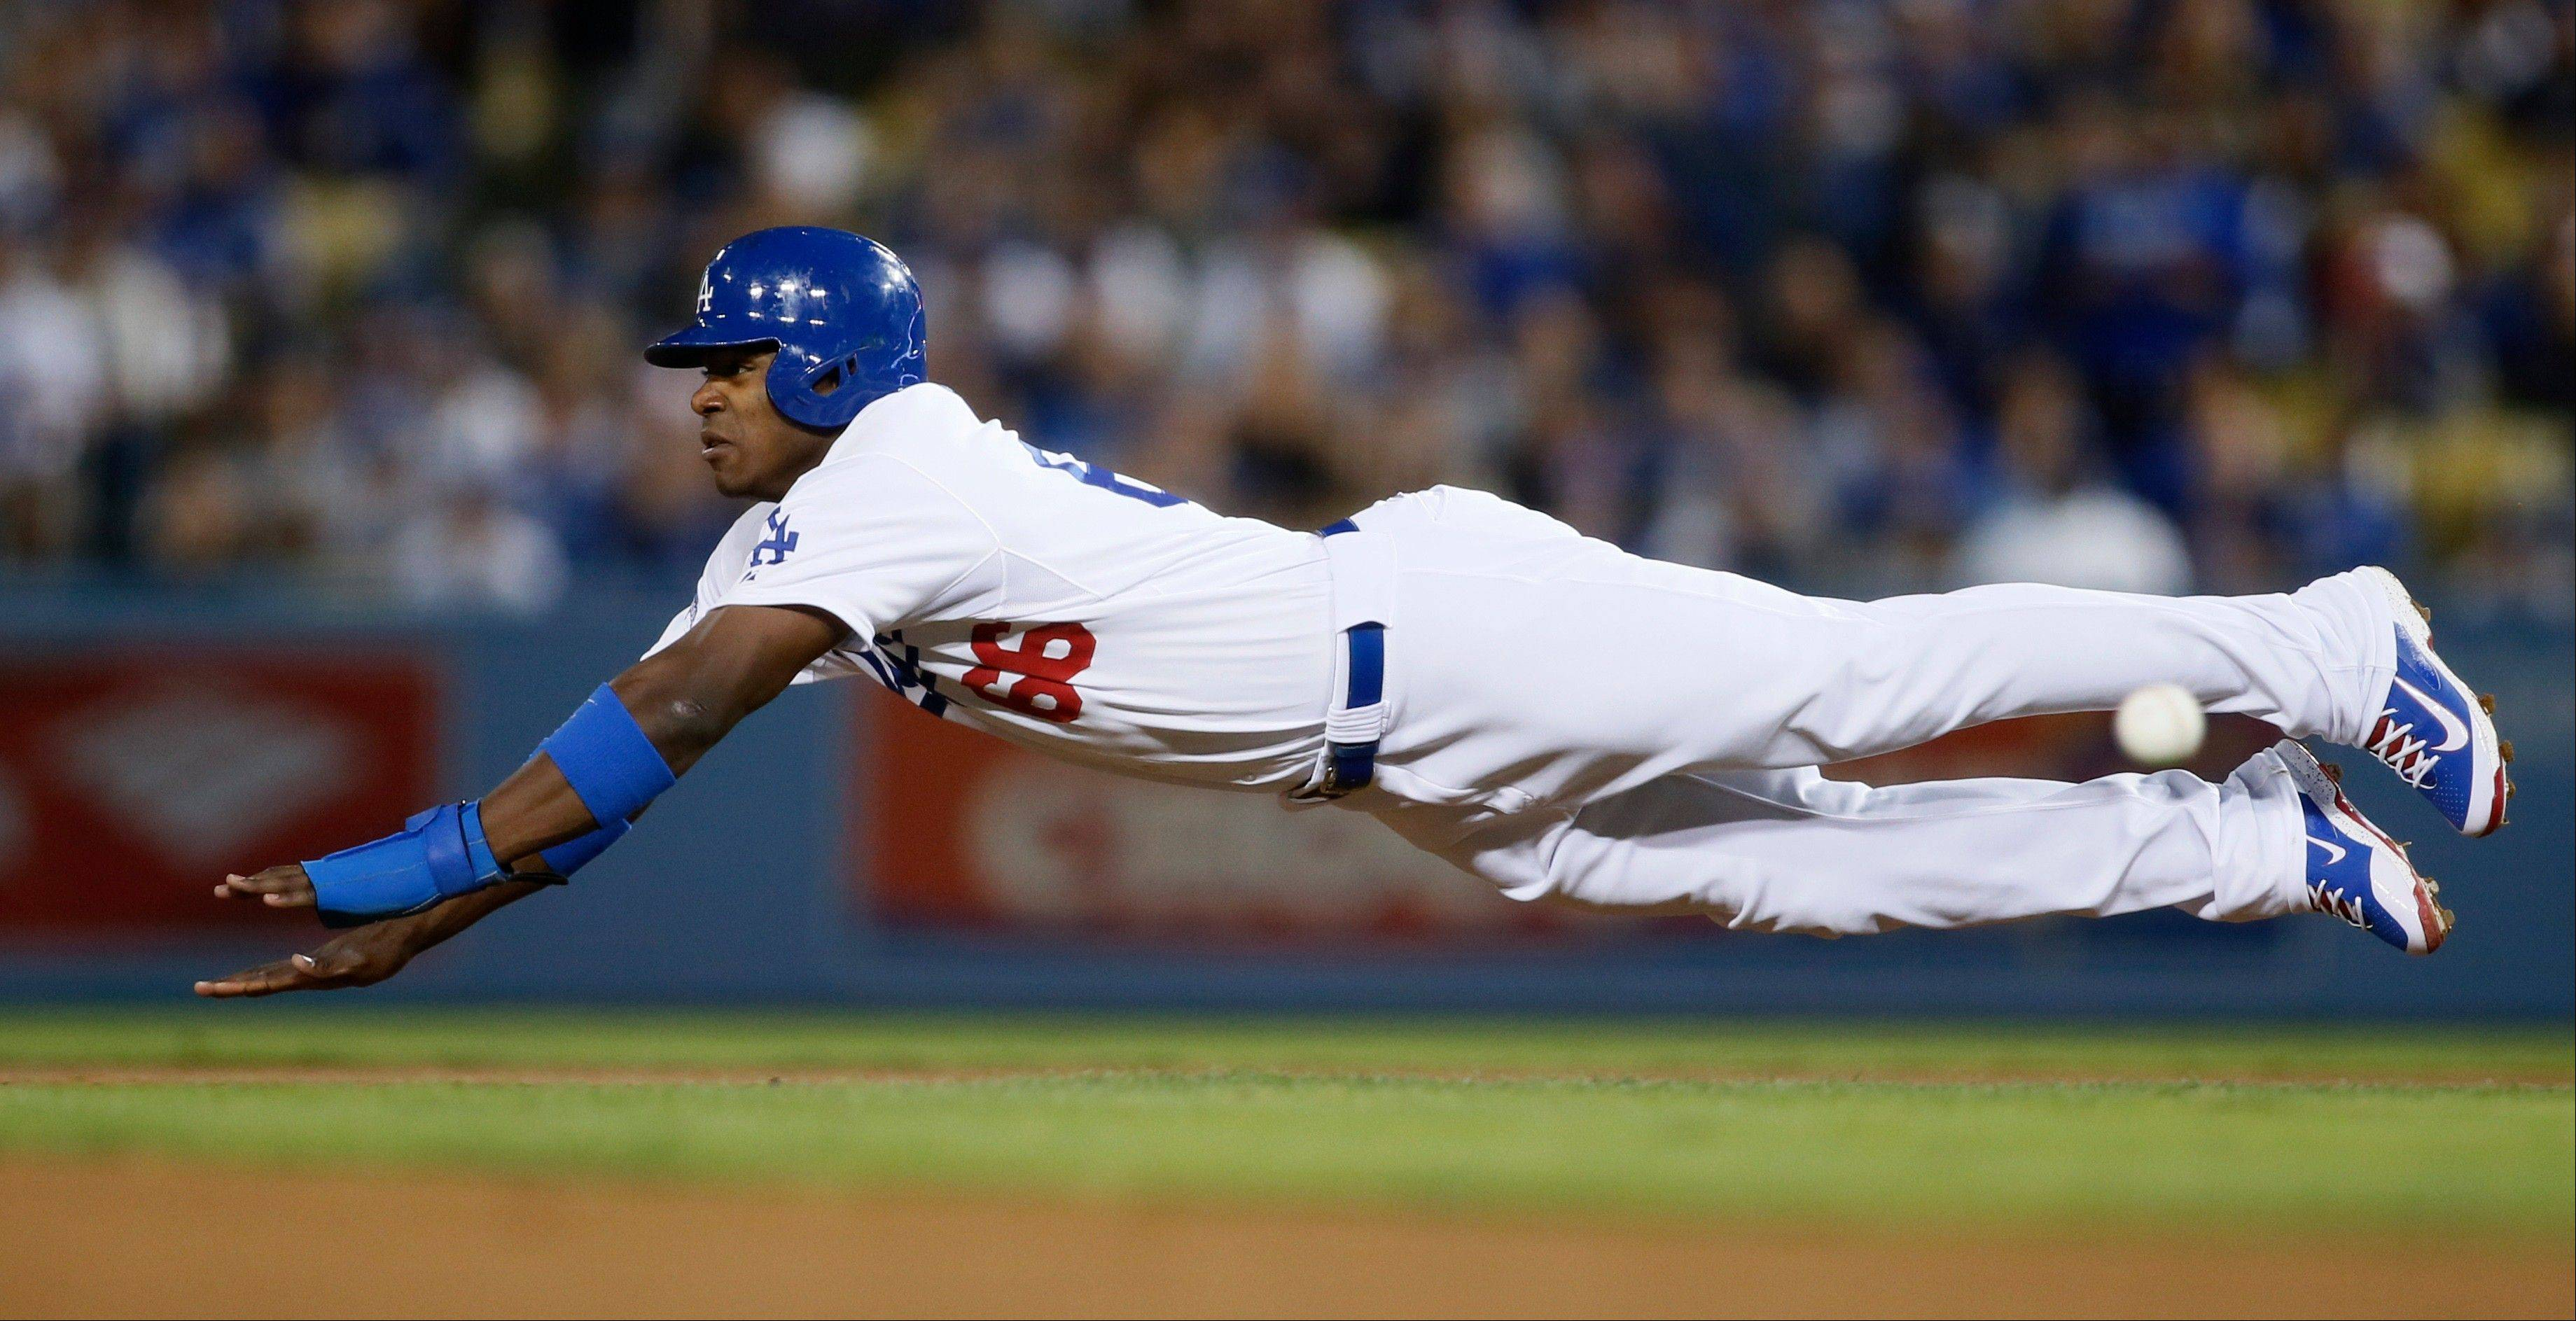 The Dodgers' Yasiel Puig dives for second base before being caught stealing in the fourth inning of Game 4.